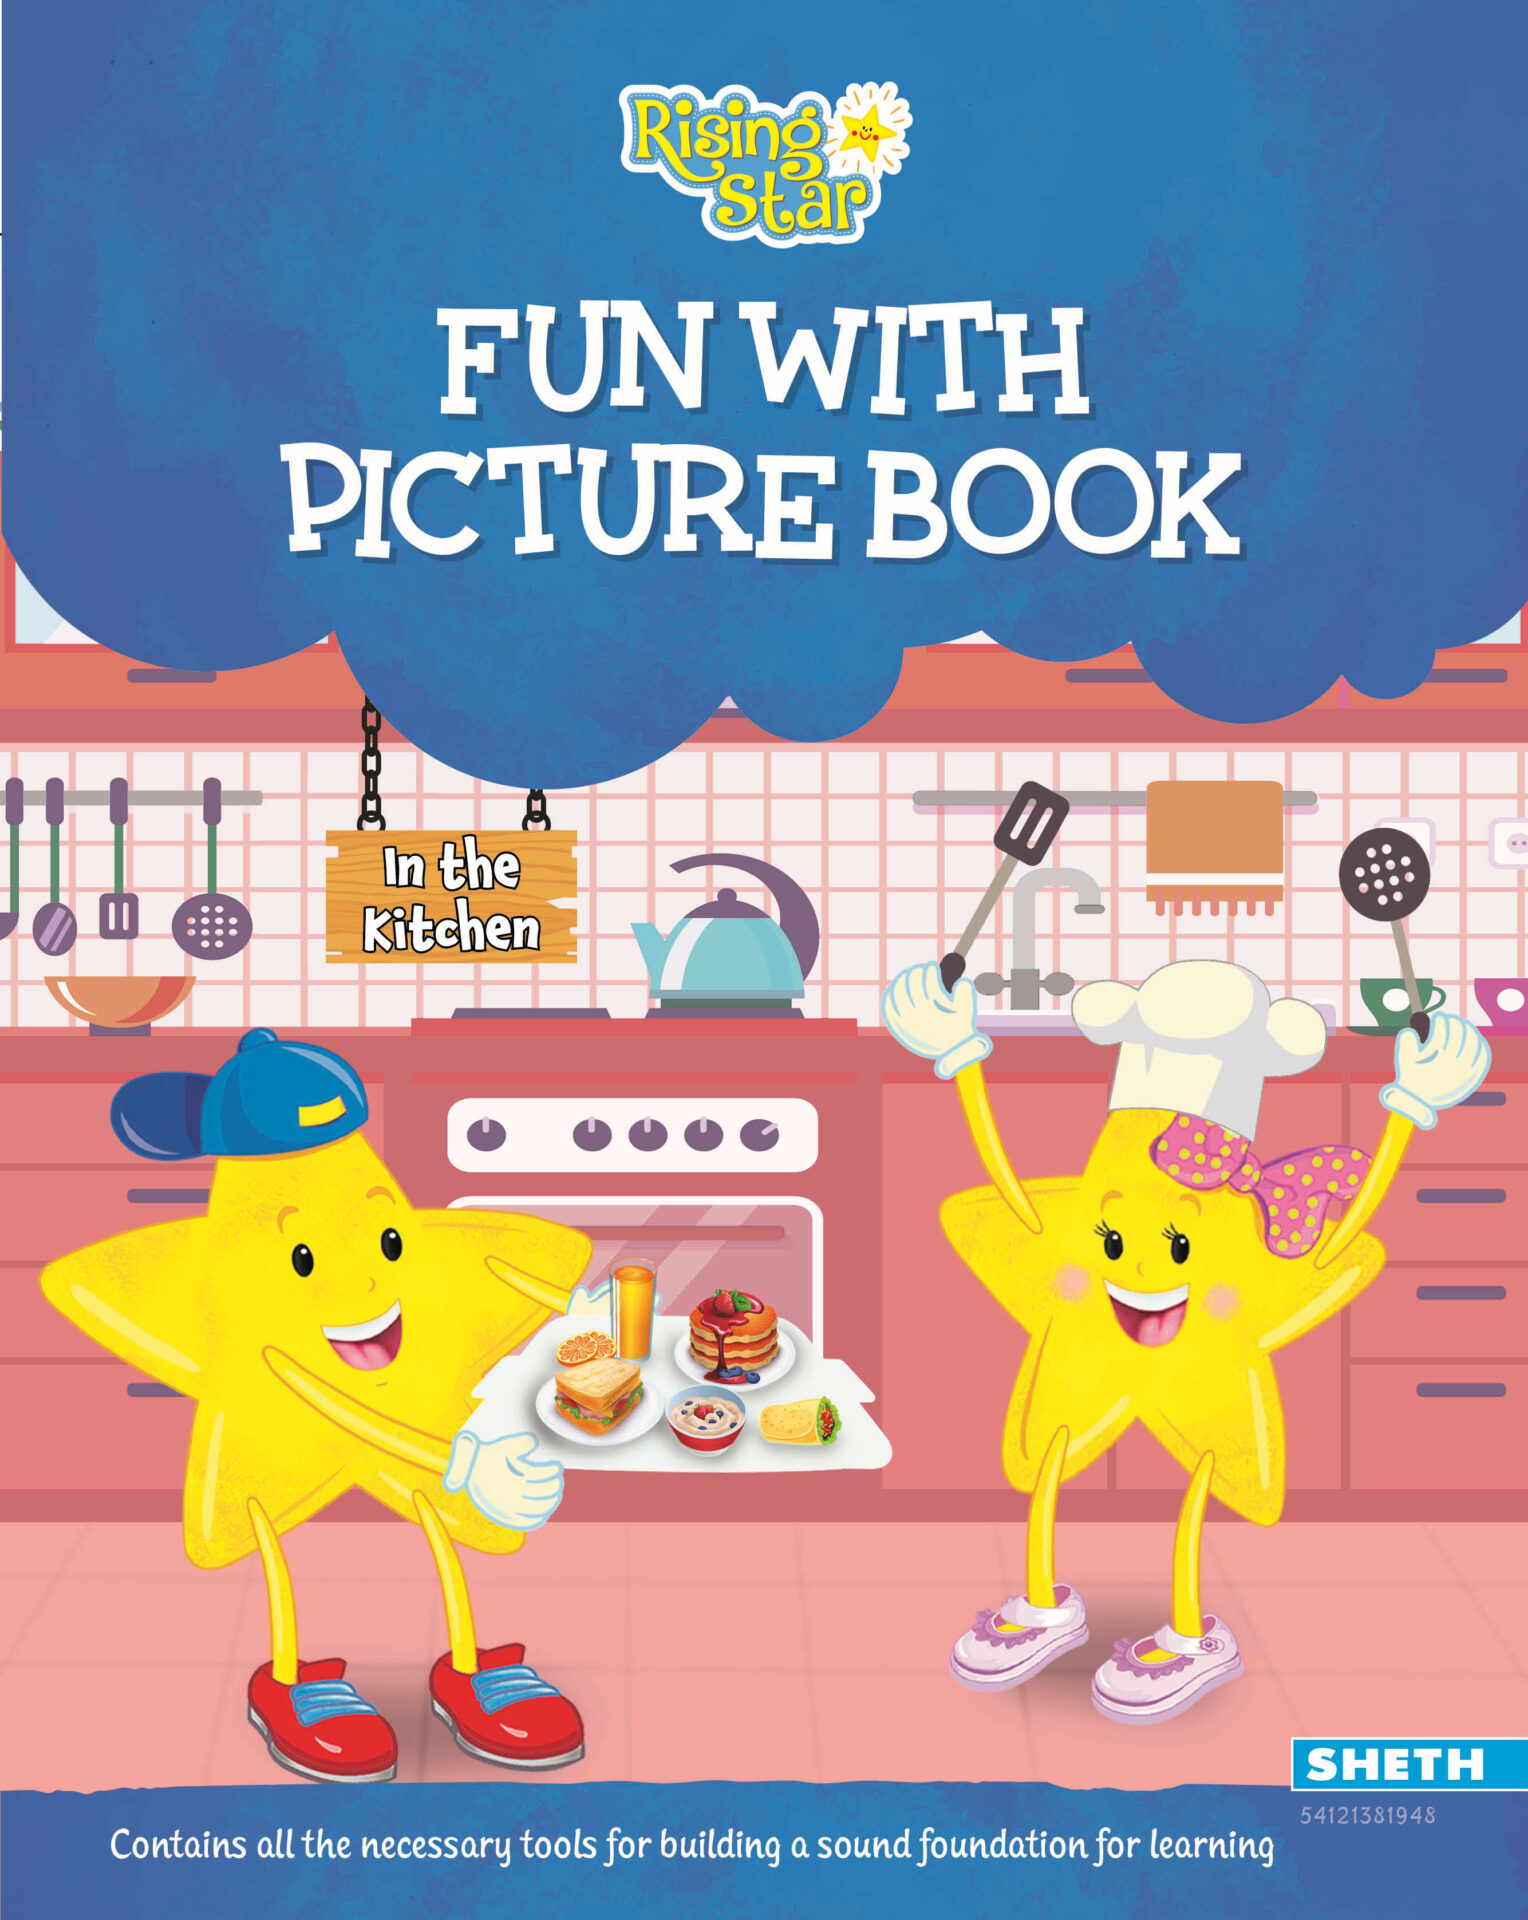 Rising Star Fun with Picture Book 1 1